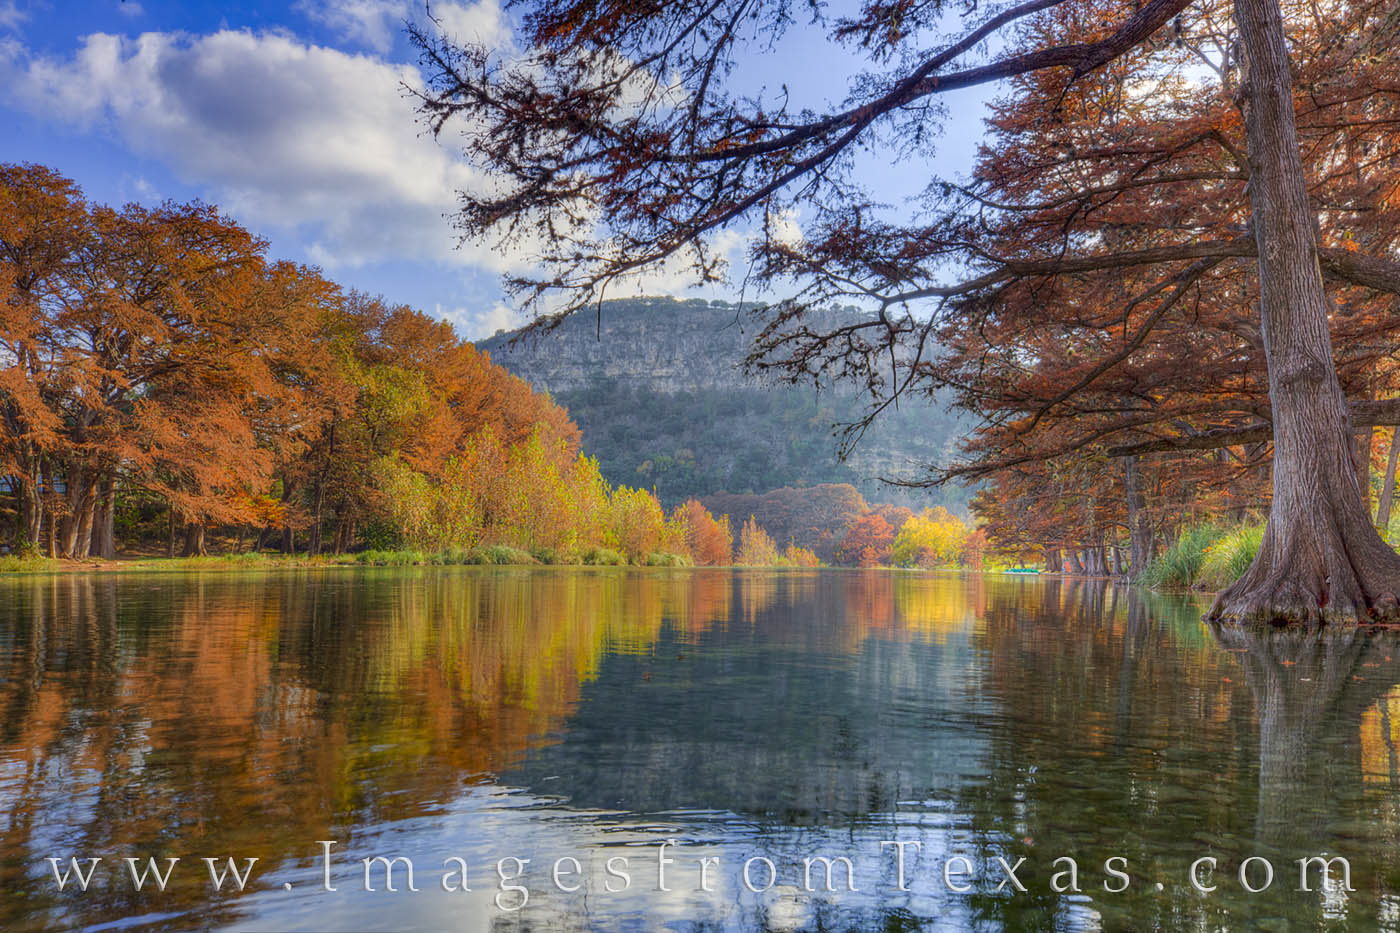 A calm Frio River in Garner State Park allowed for some amazing reflections of Mount Baldy and colorful cypress trees. The Autumn...